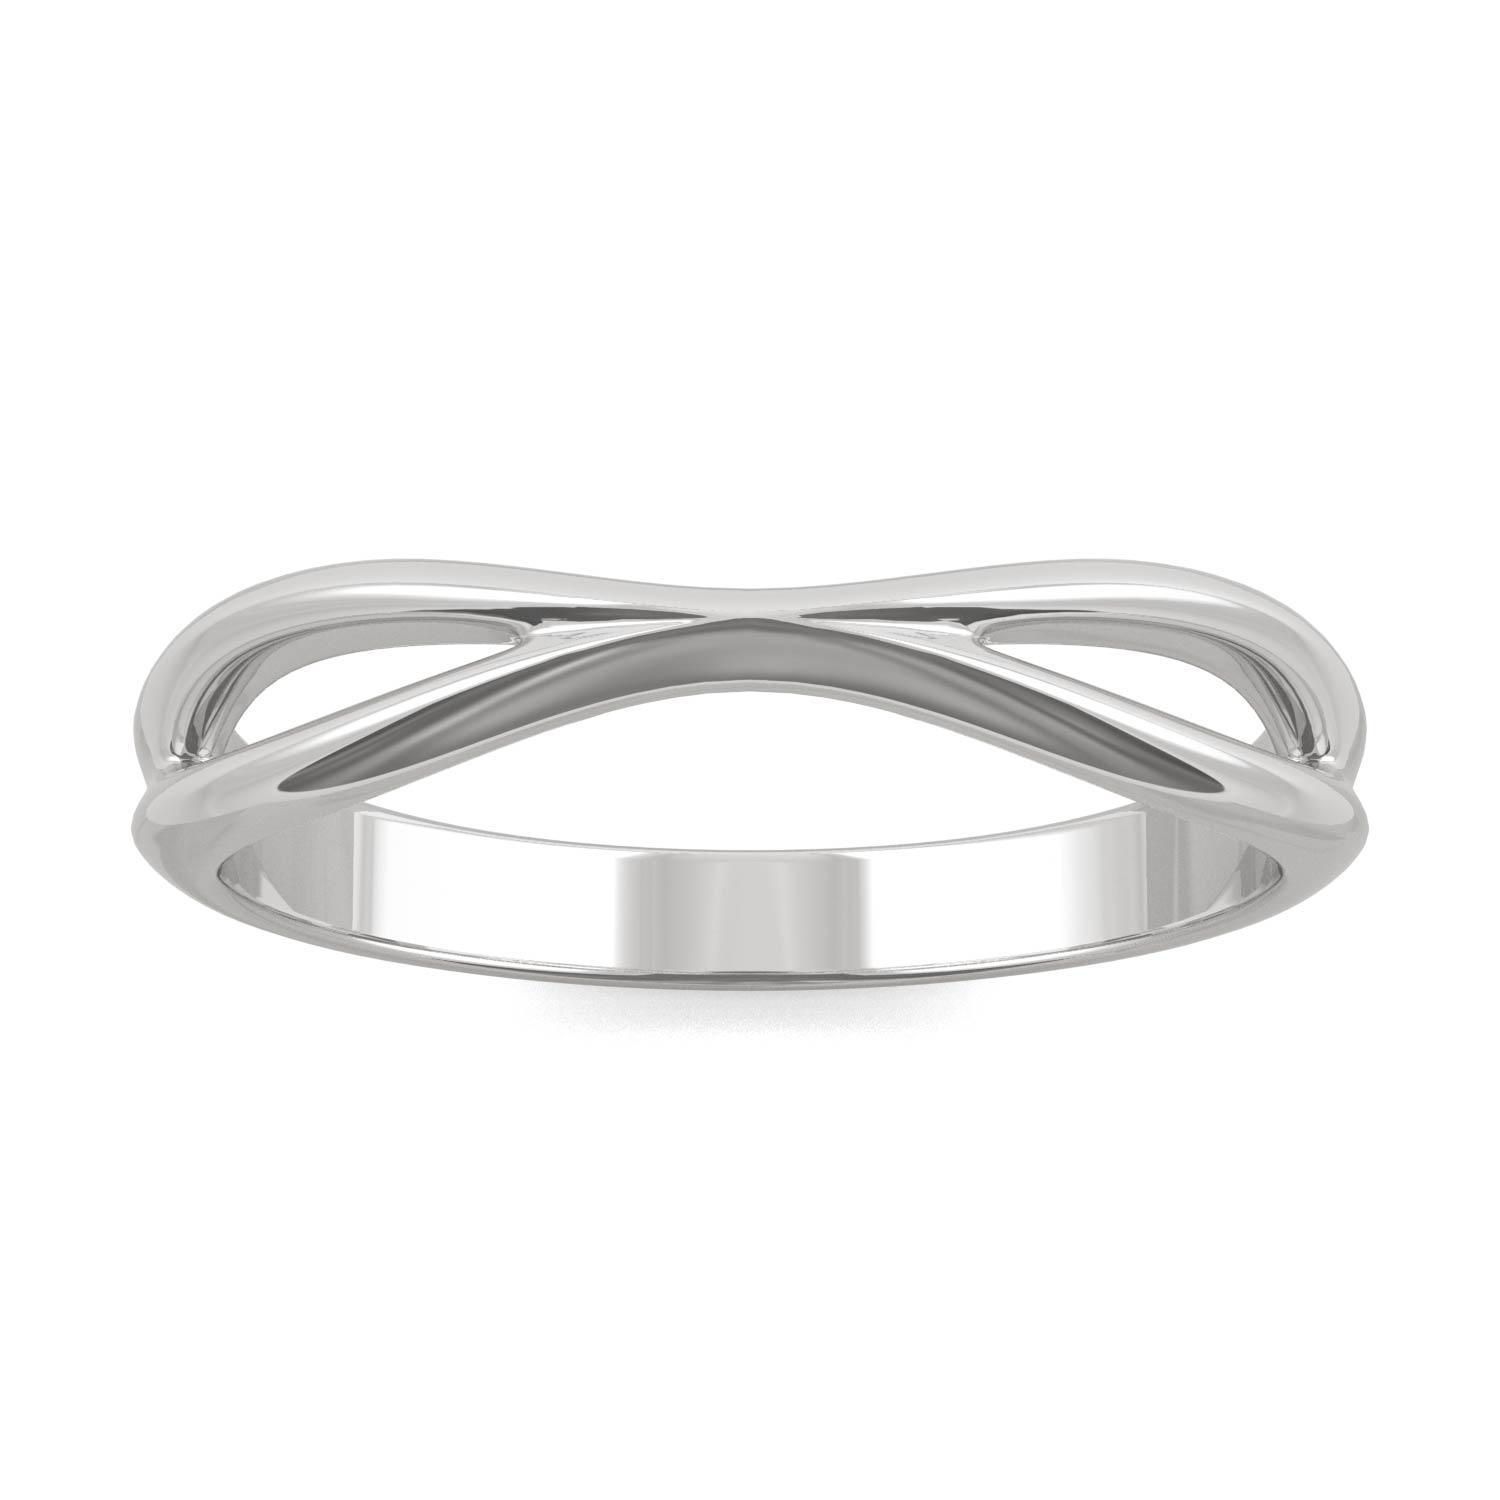 Signature Curved Open Wedding Band in 14K White Gold